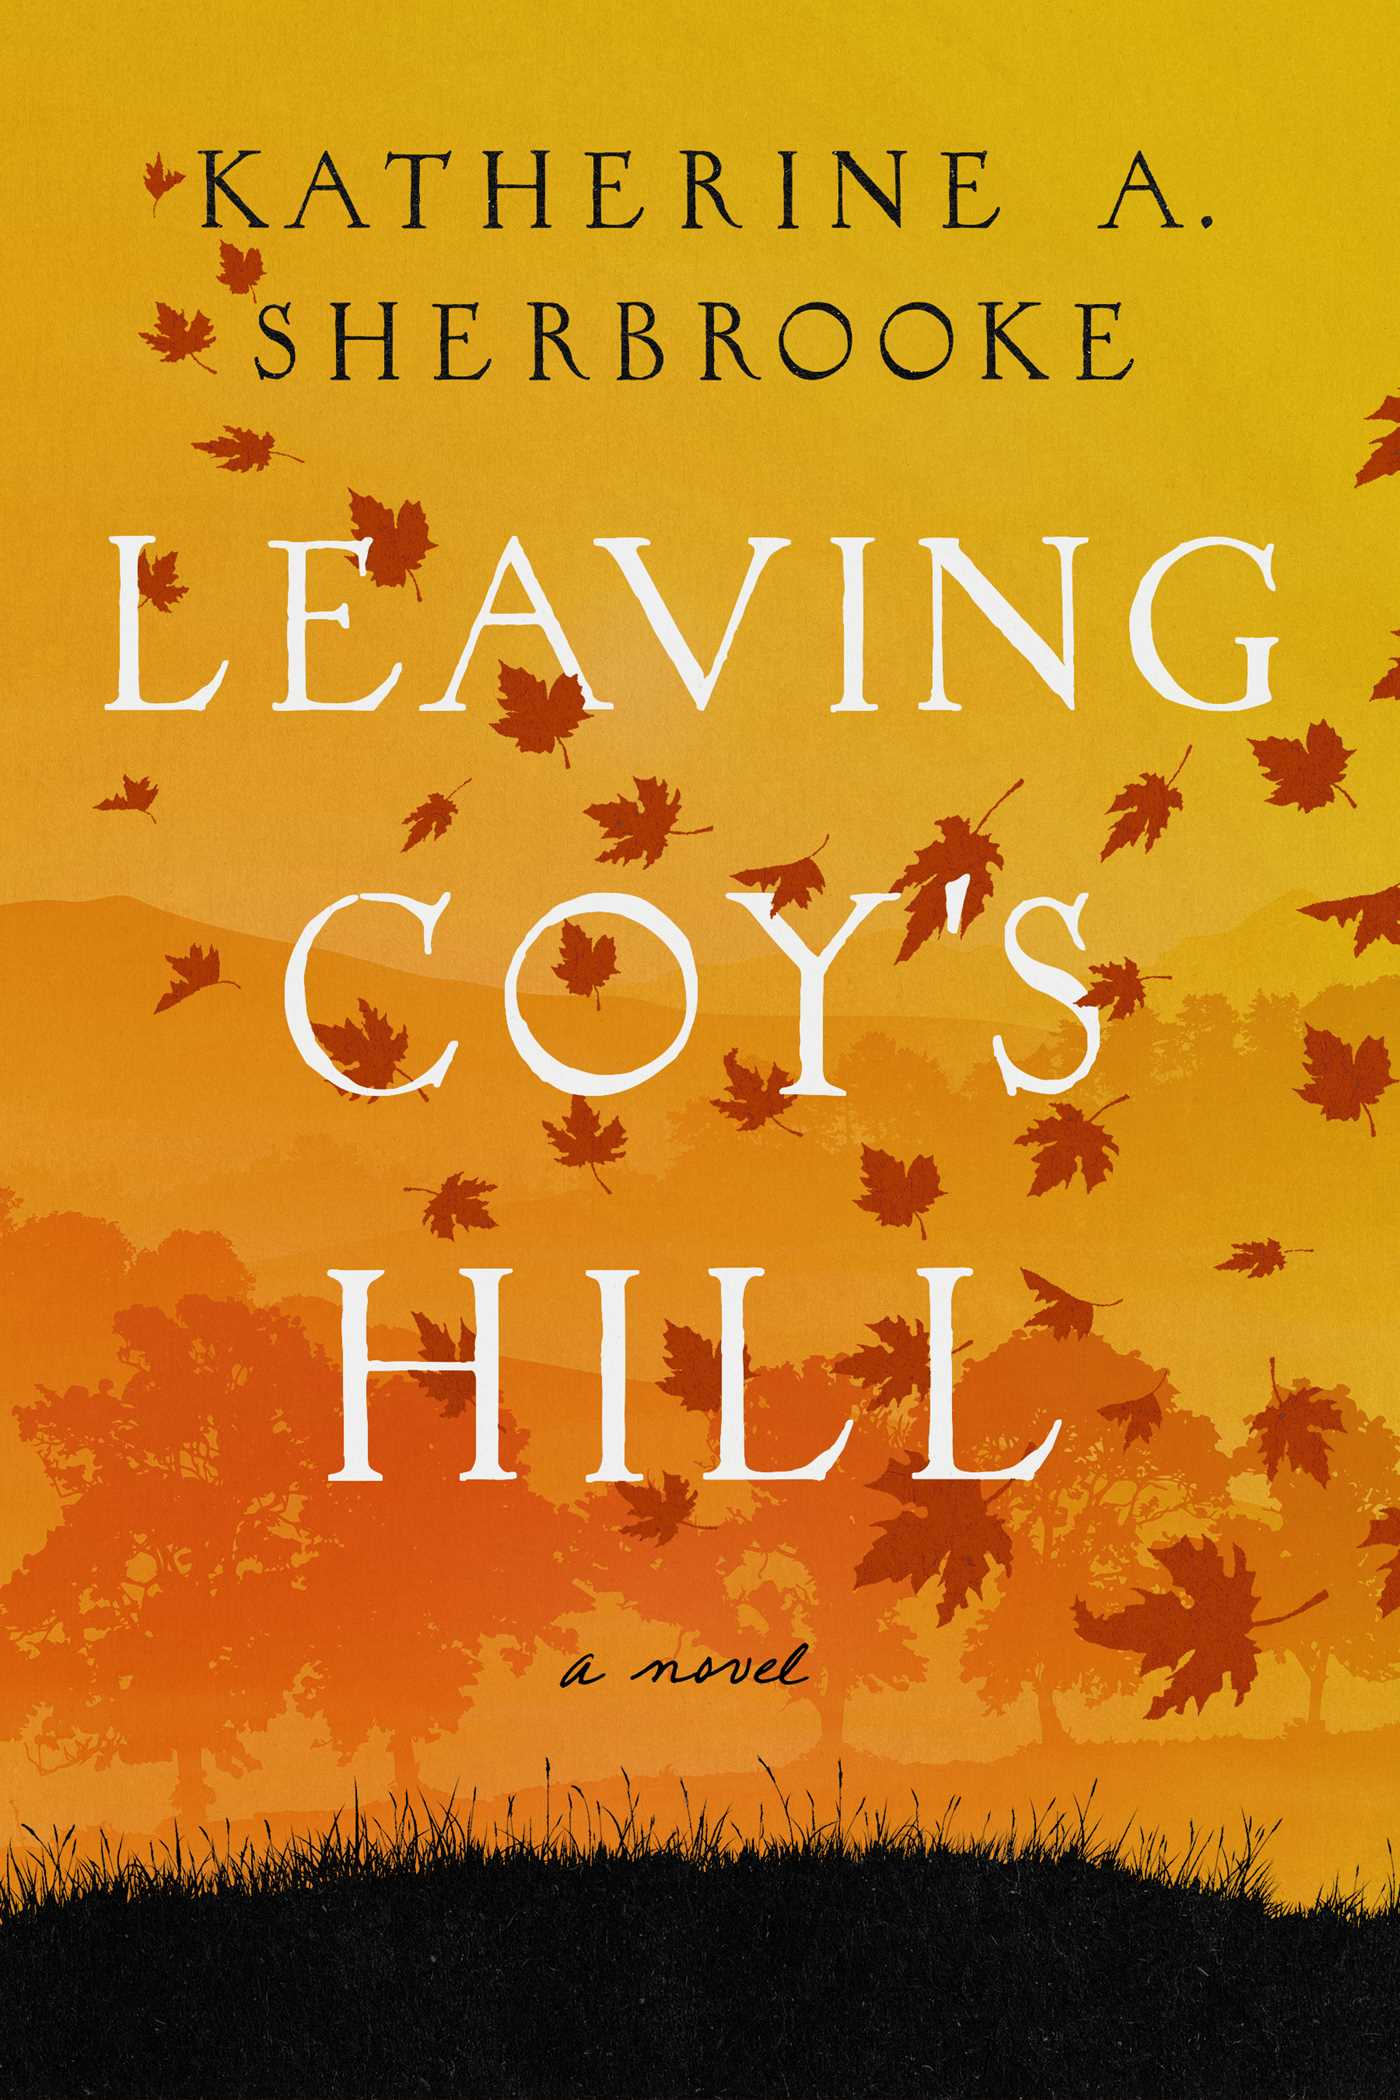 Leaving Coy's Hill by Katherine A. Sherbrooke